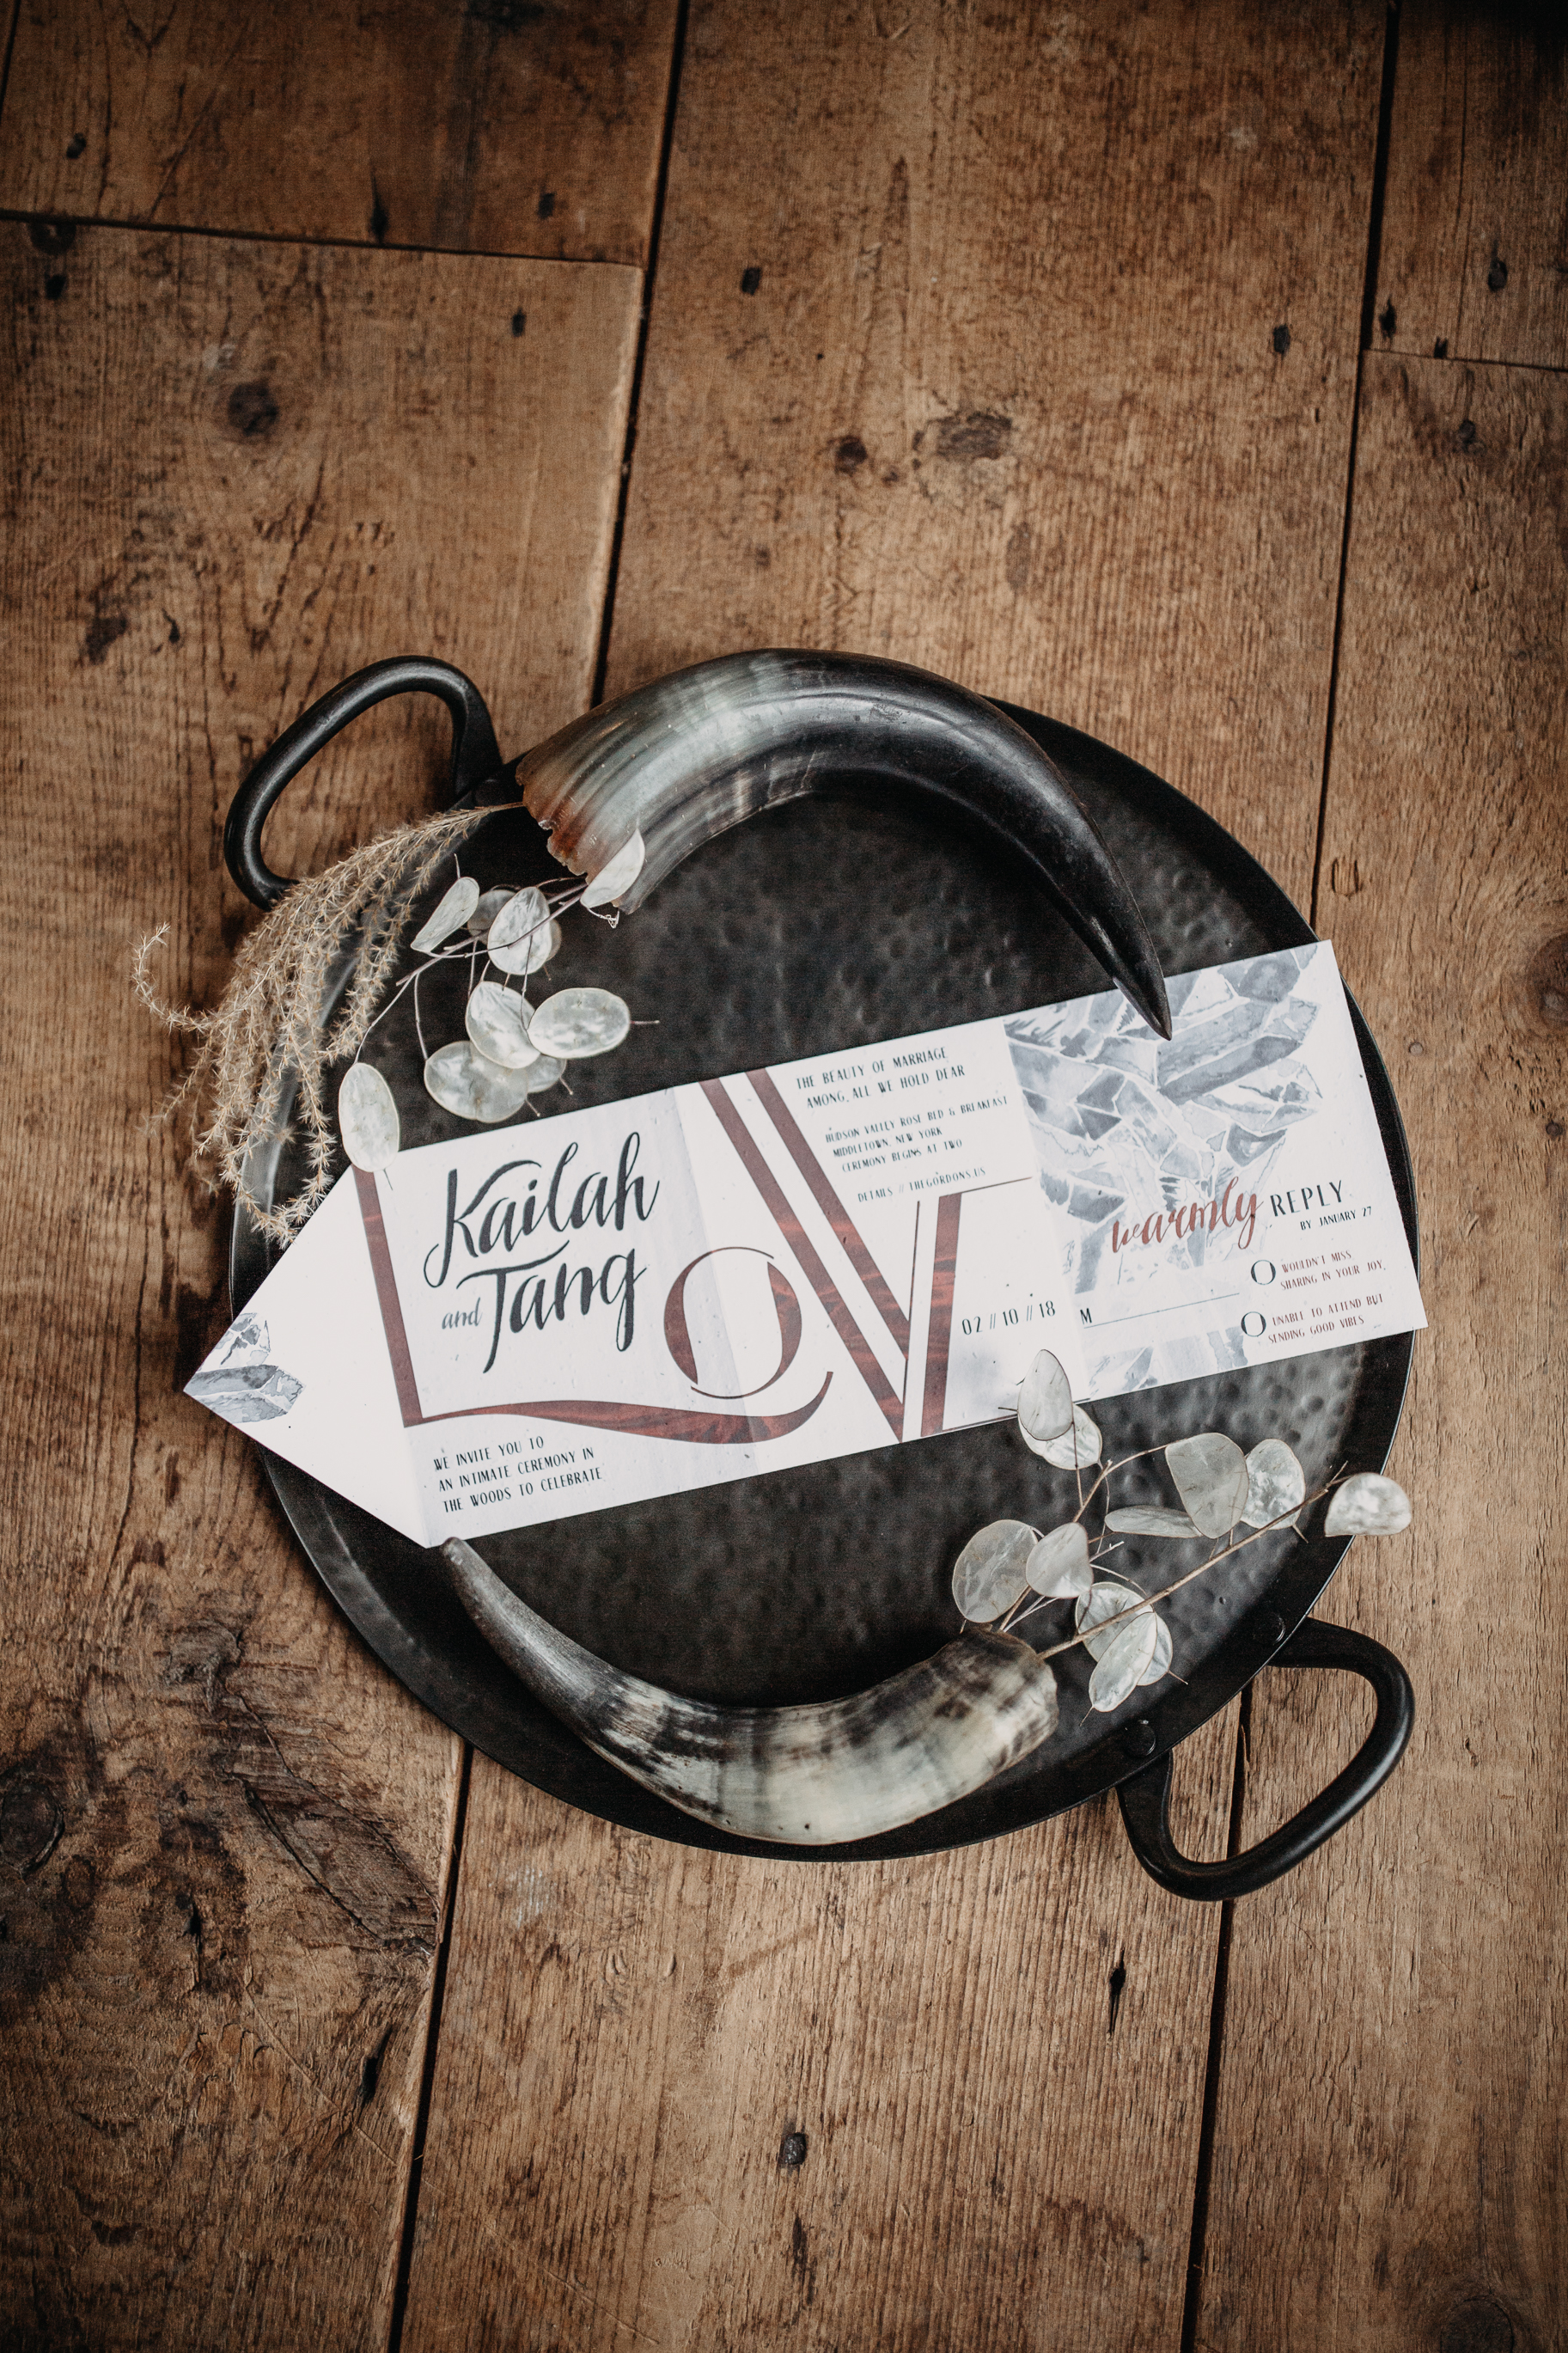 B & B fashionable Elopement in January with plantable stationary - Pearl Weddings & Events